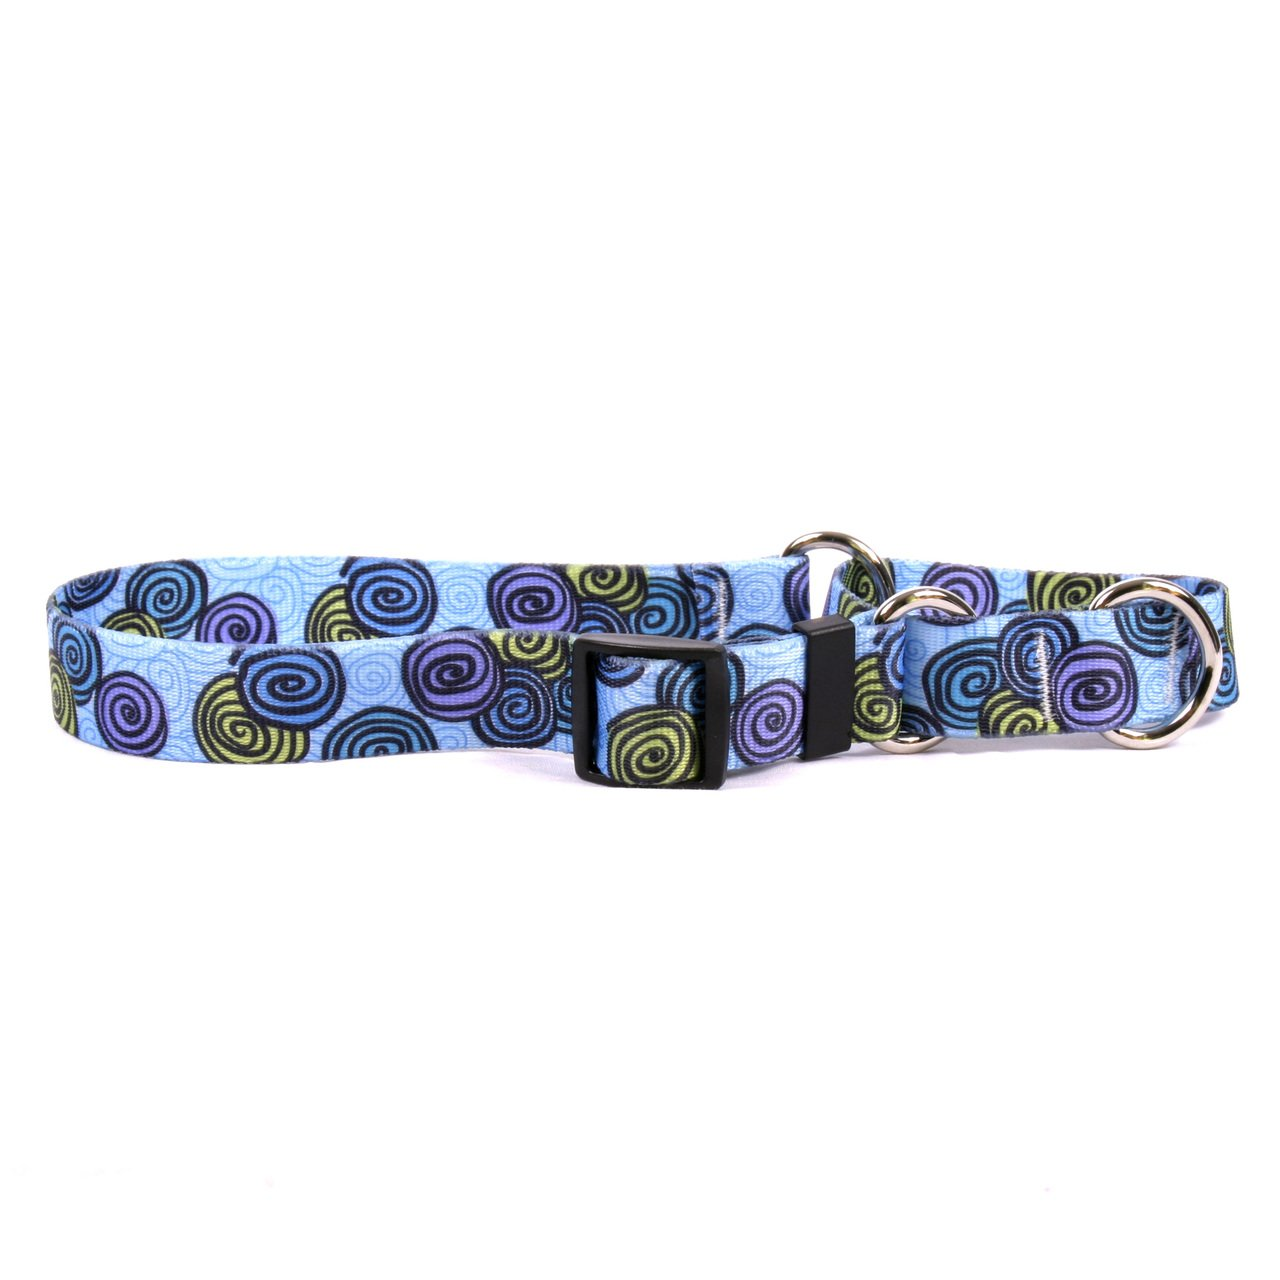 Large 26\ Yellow Dog Design Spirals bluee Martingale Dog Collar-Size Large-1  Wide and fits Neck 18 to 26